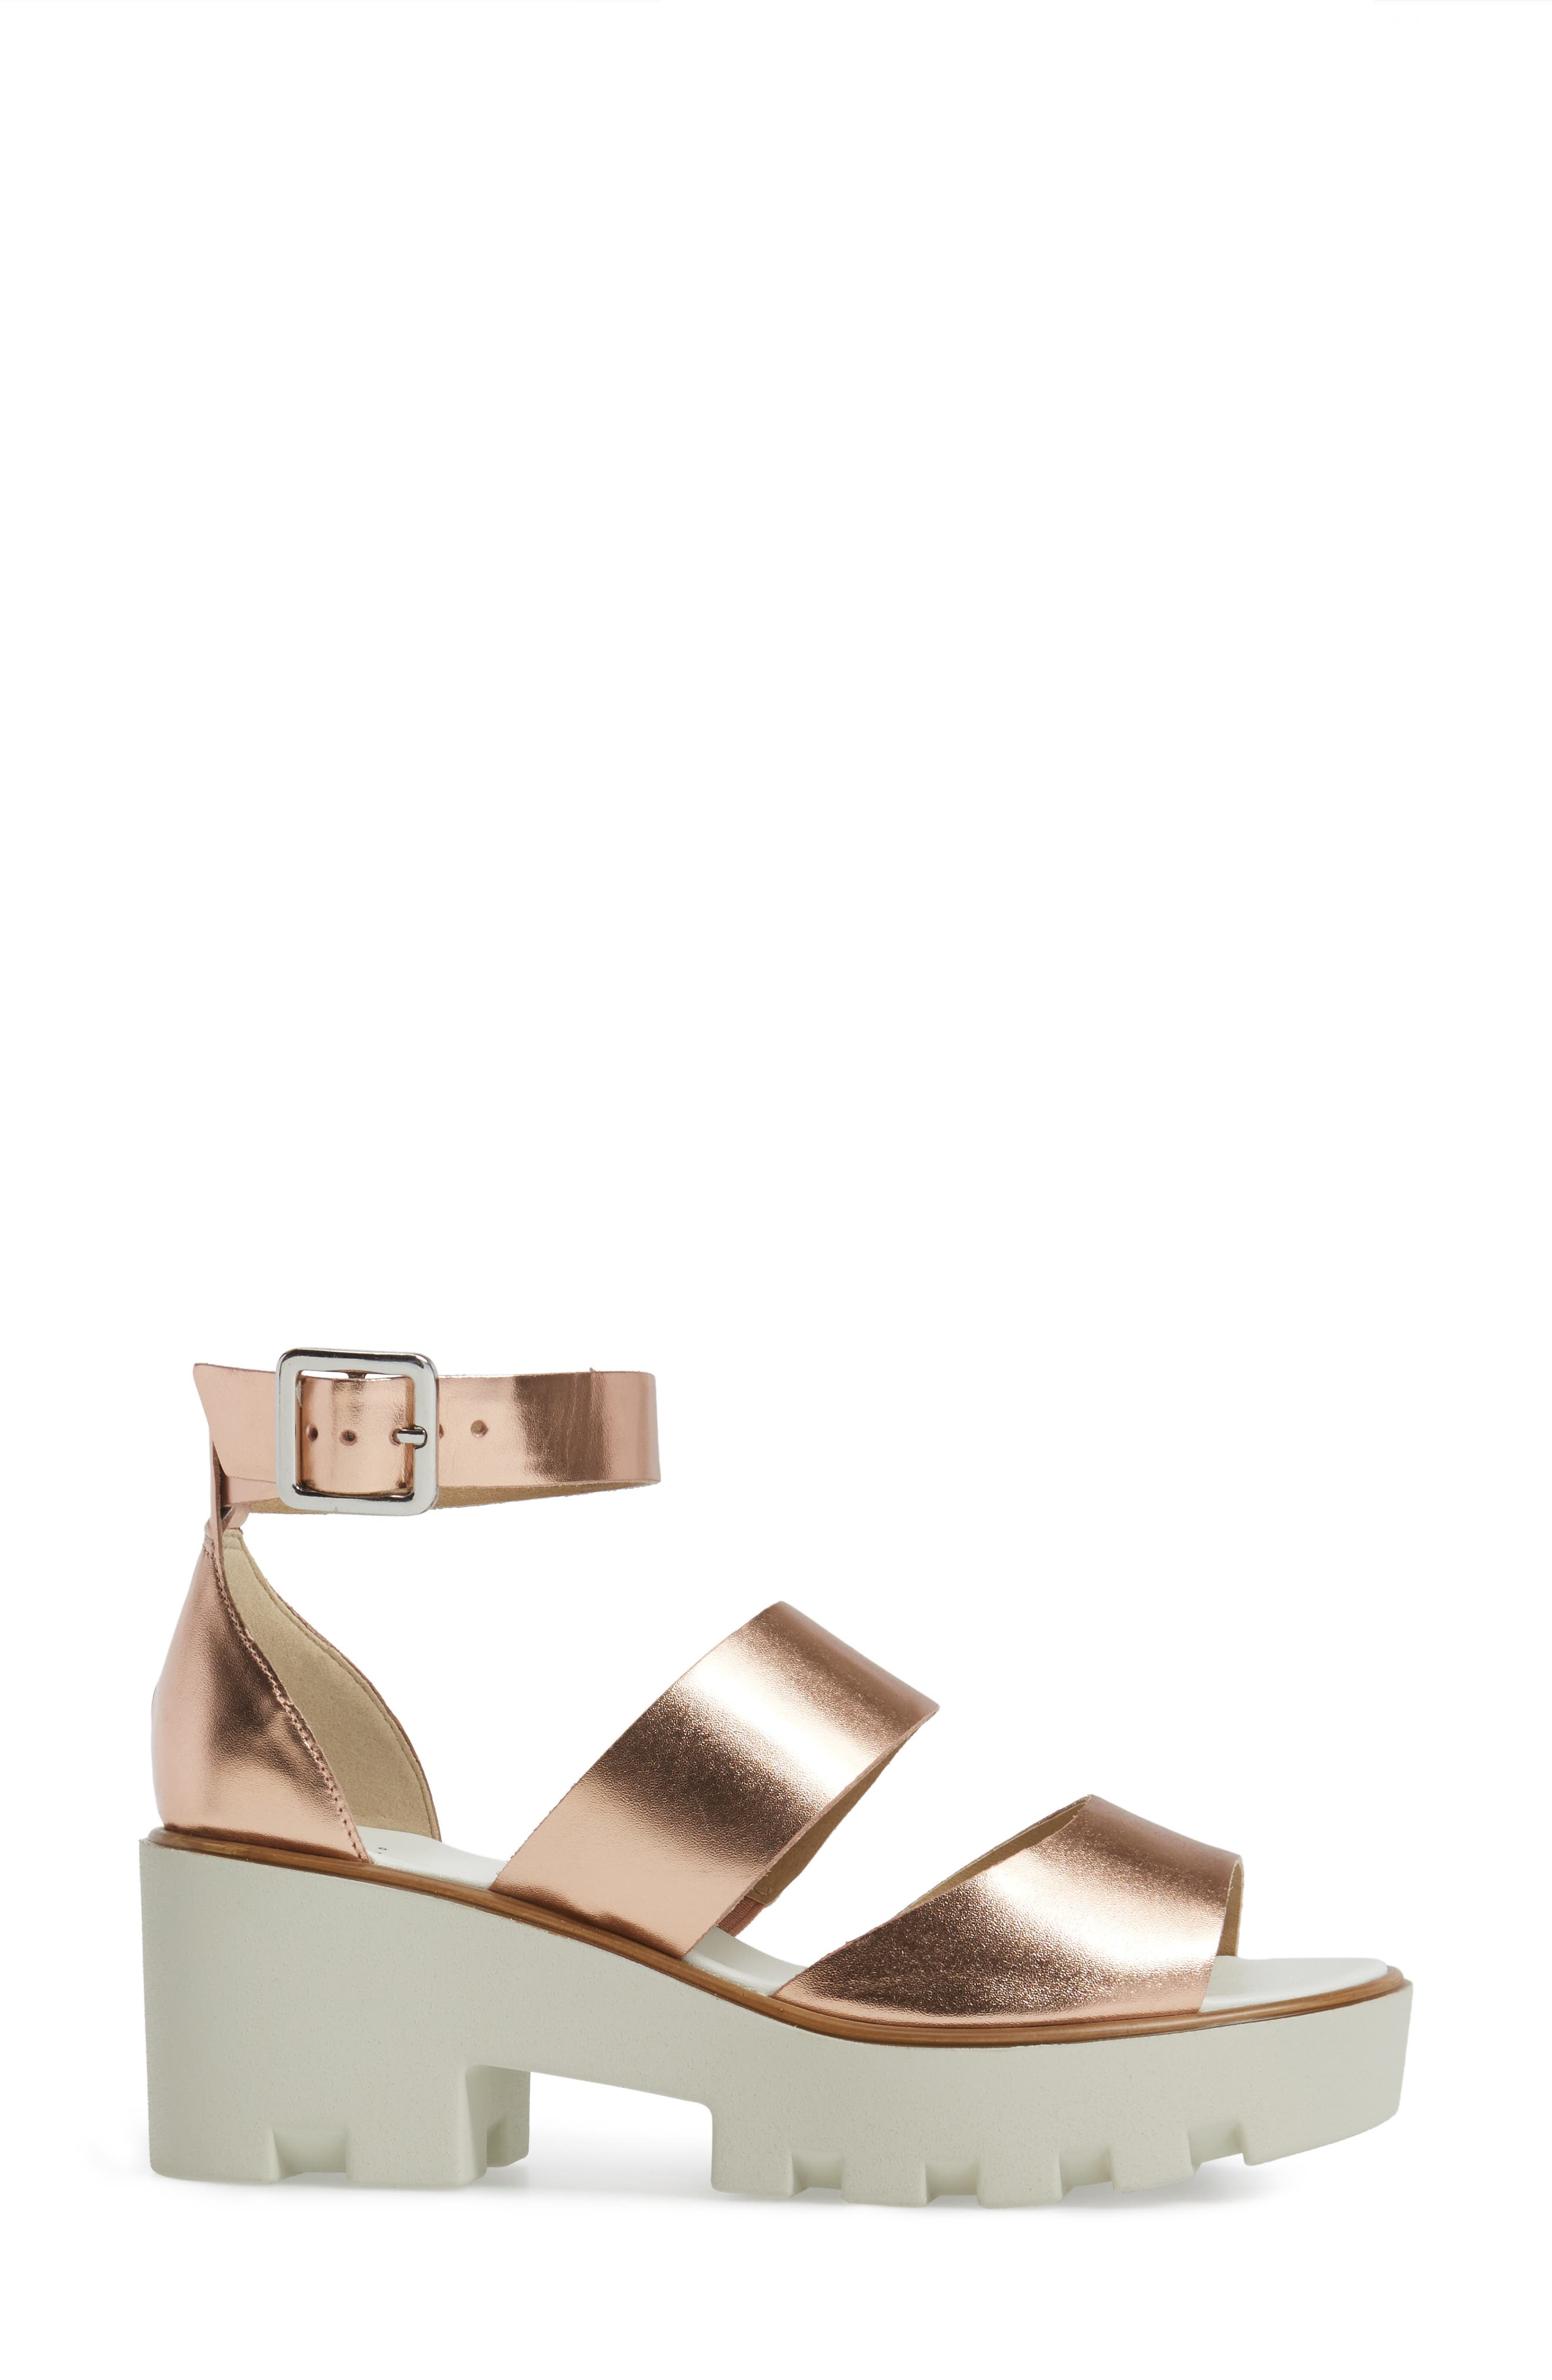 Alternate Image 3  - BP. Rowan Platform Sandal (Women)